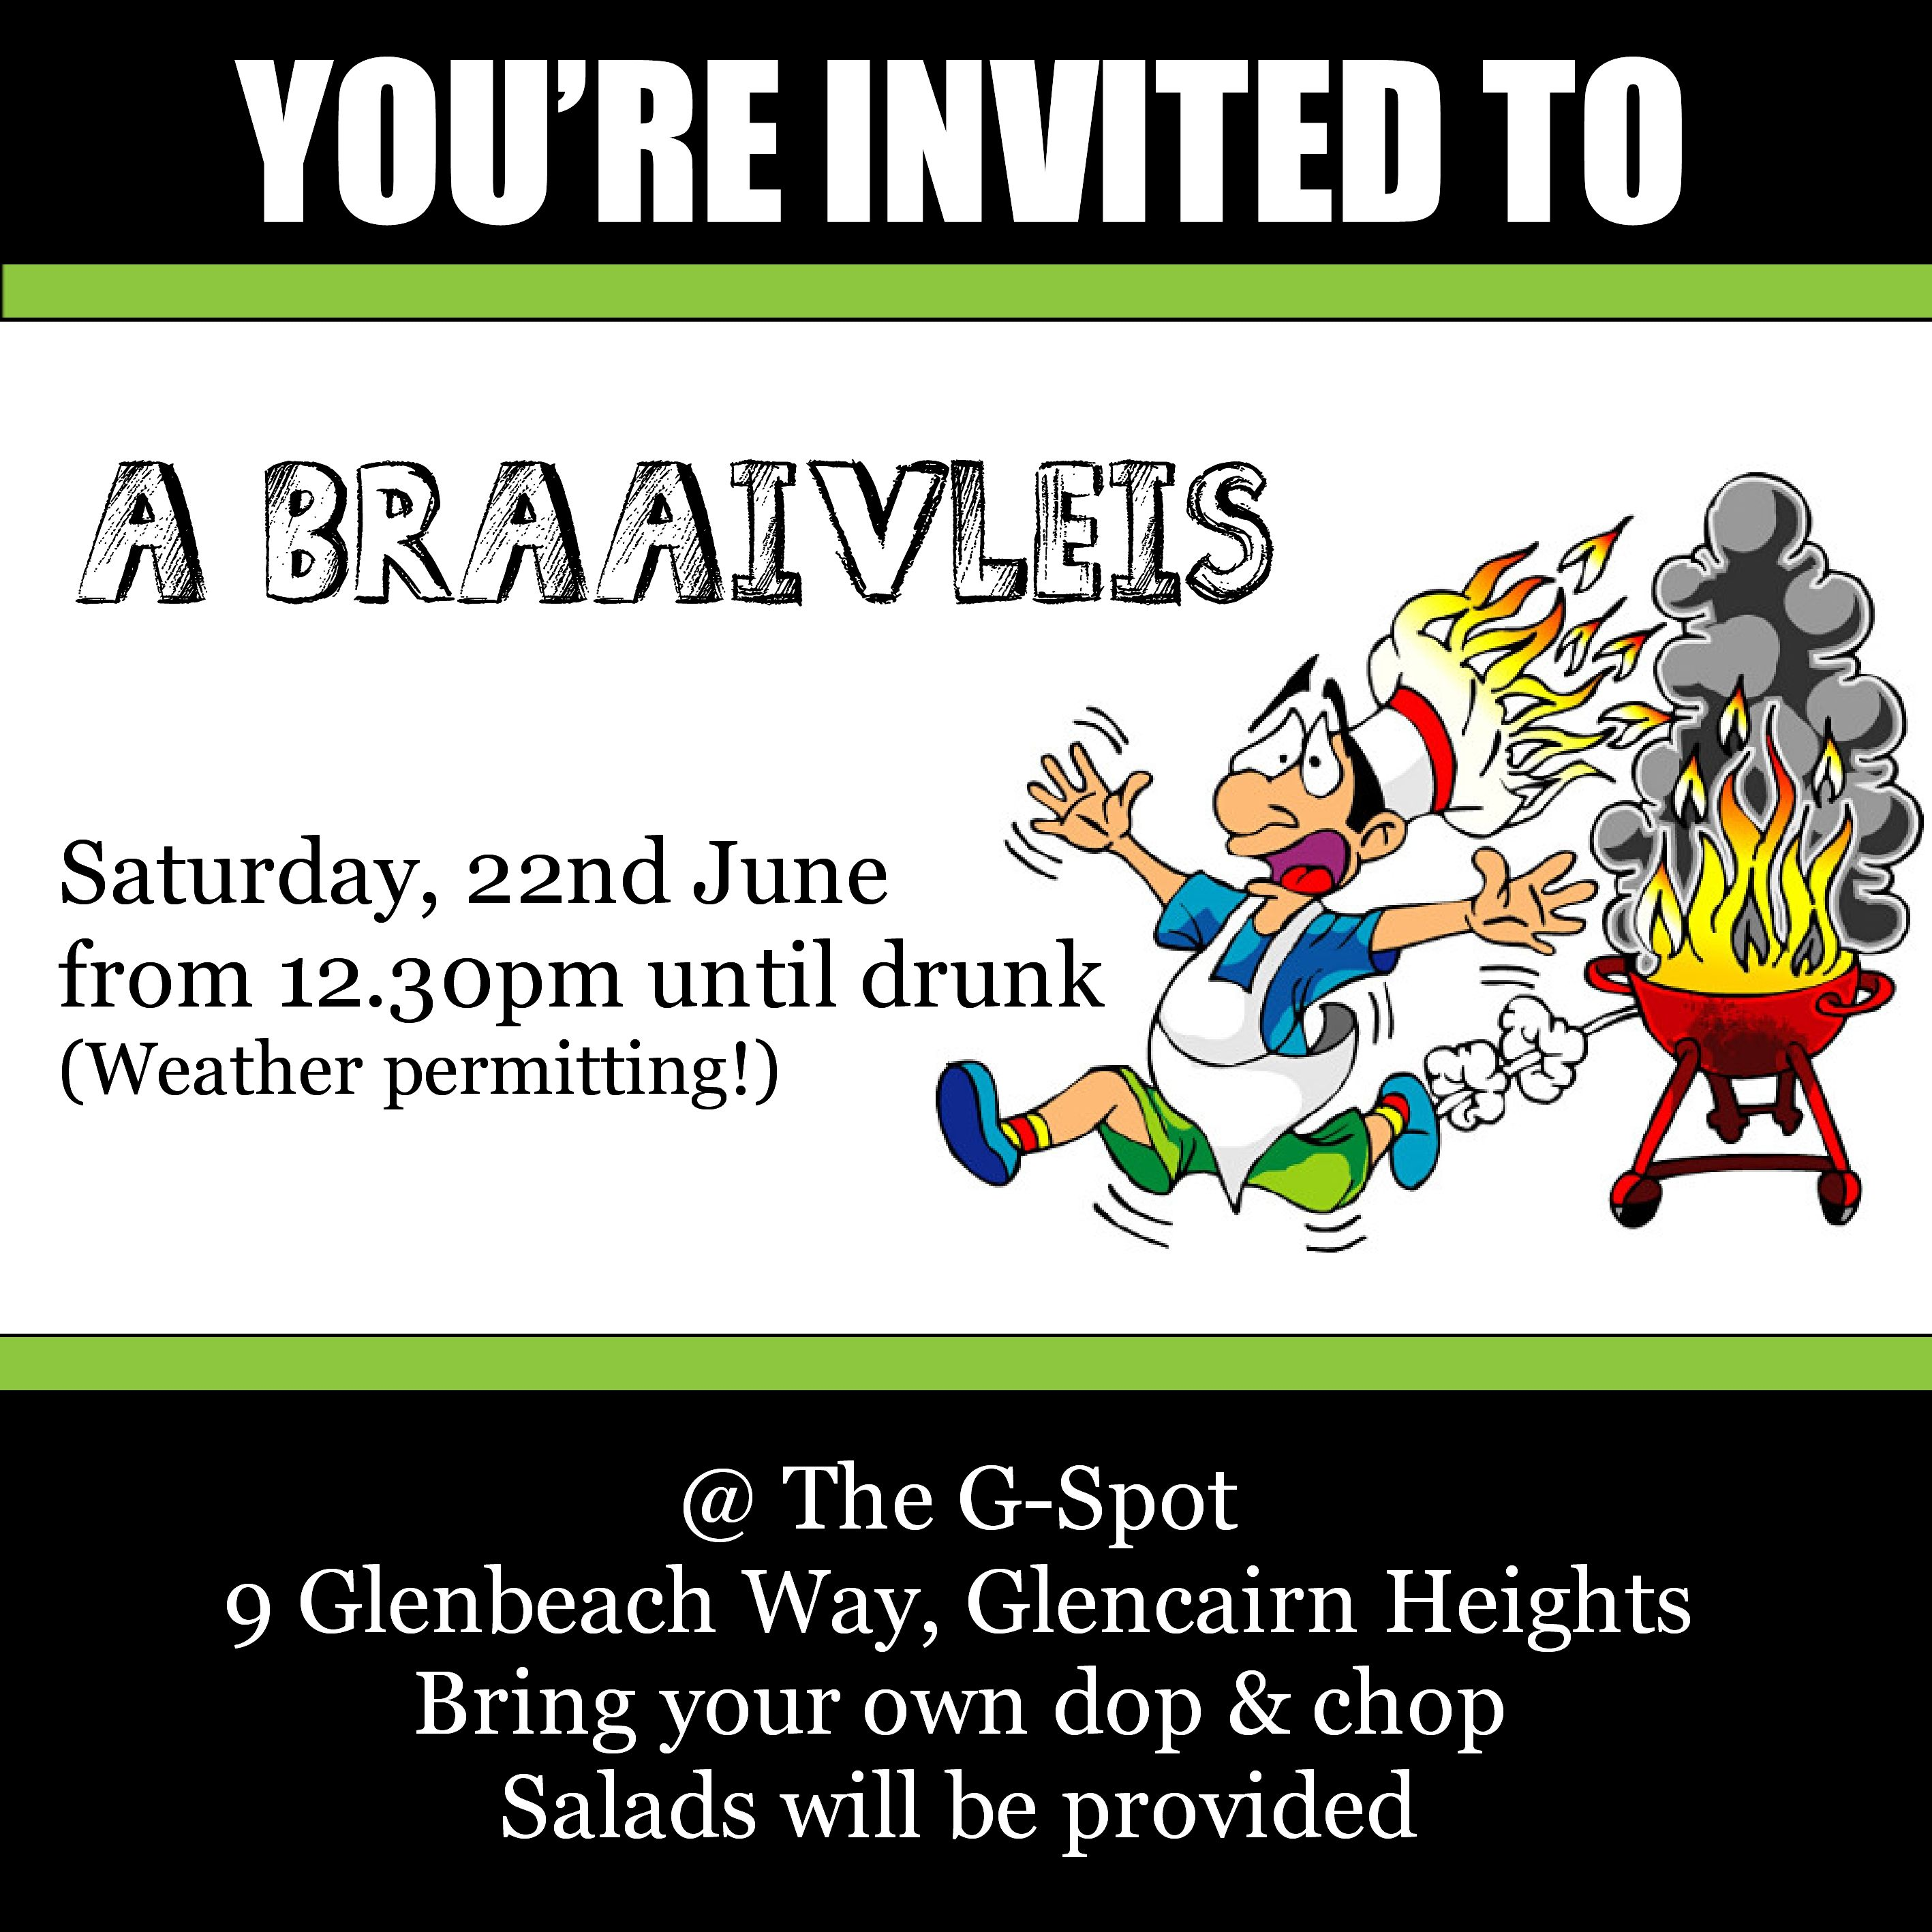 a braaivleis sunday 20 may 2018 from 12pm untill high tide bring